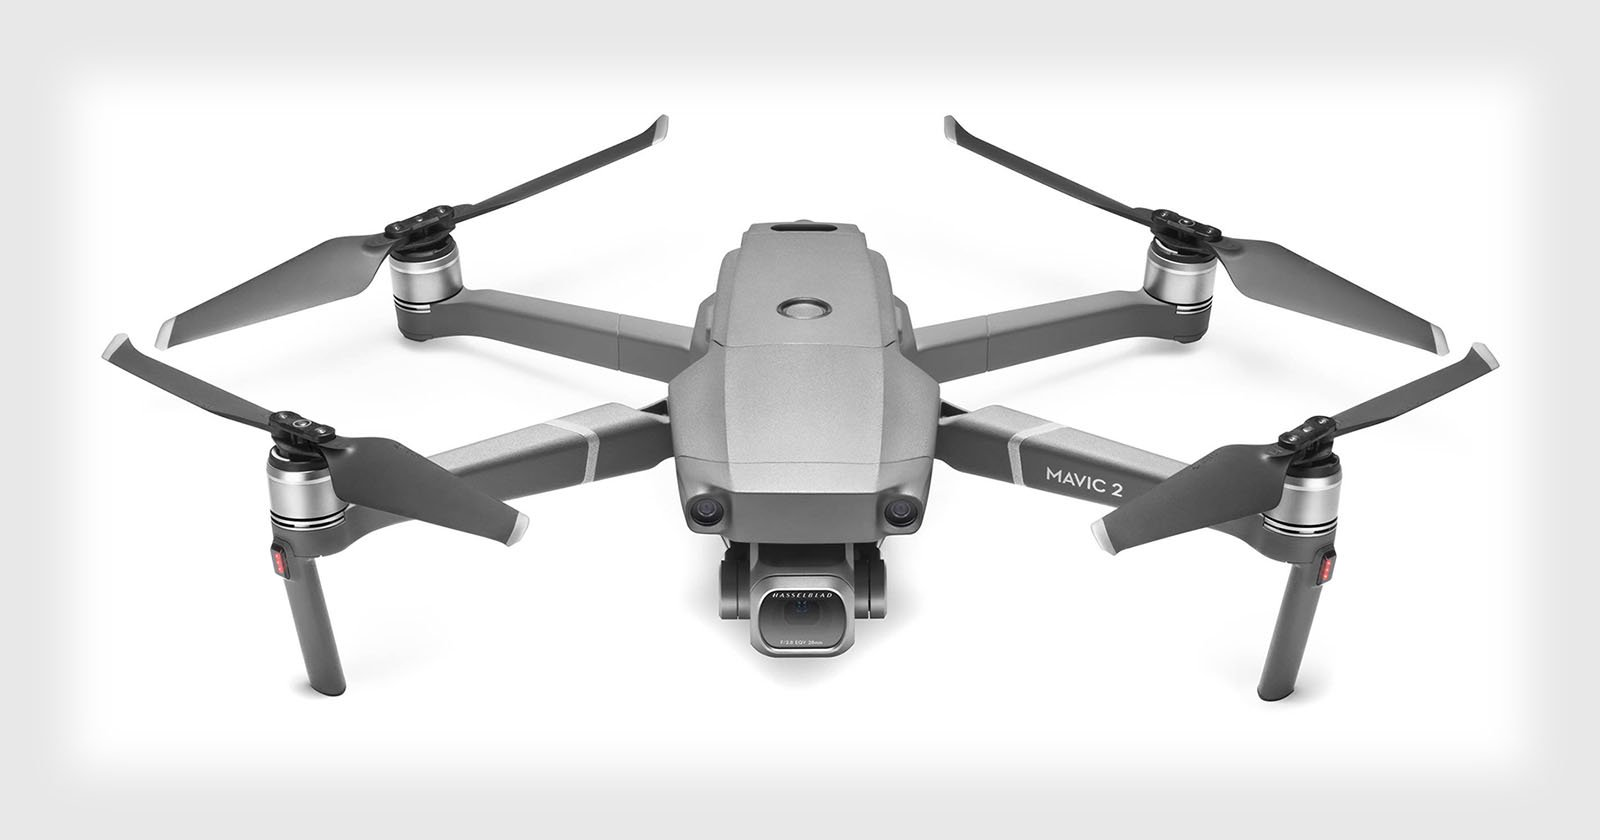 I've Never Flown a Drone. Here's My Review of the DJI Mavic 2 Pro